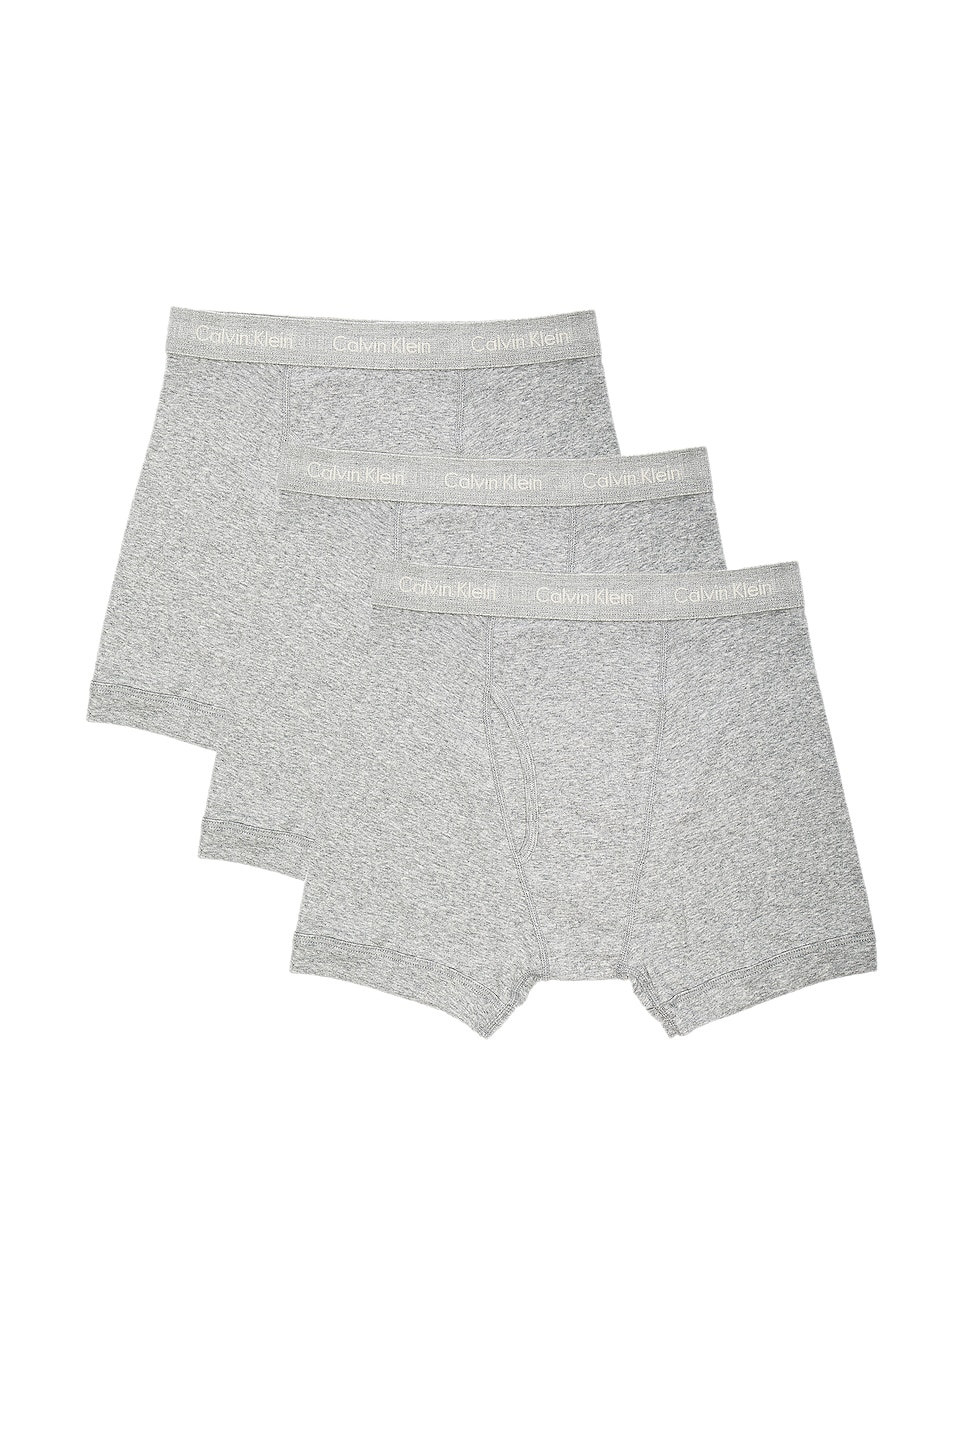 Cotton Classics 3 Pack Boxer Briefs by Calvin Klein Underwear